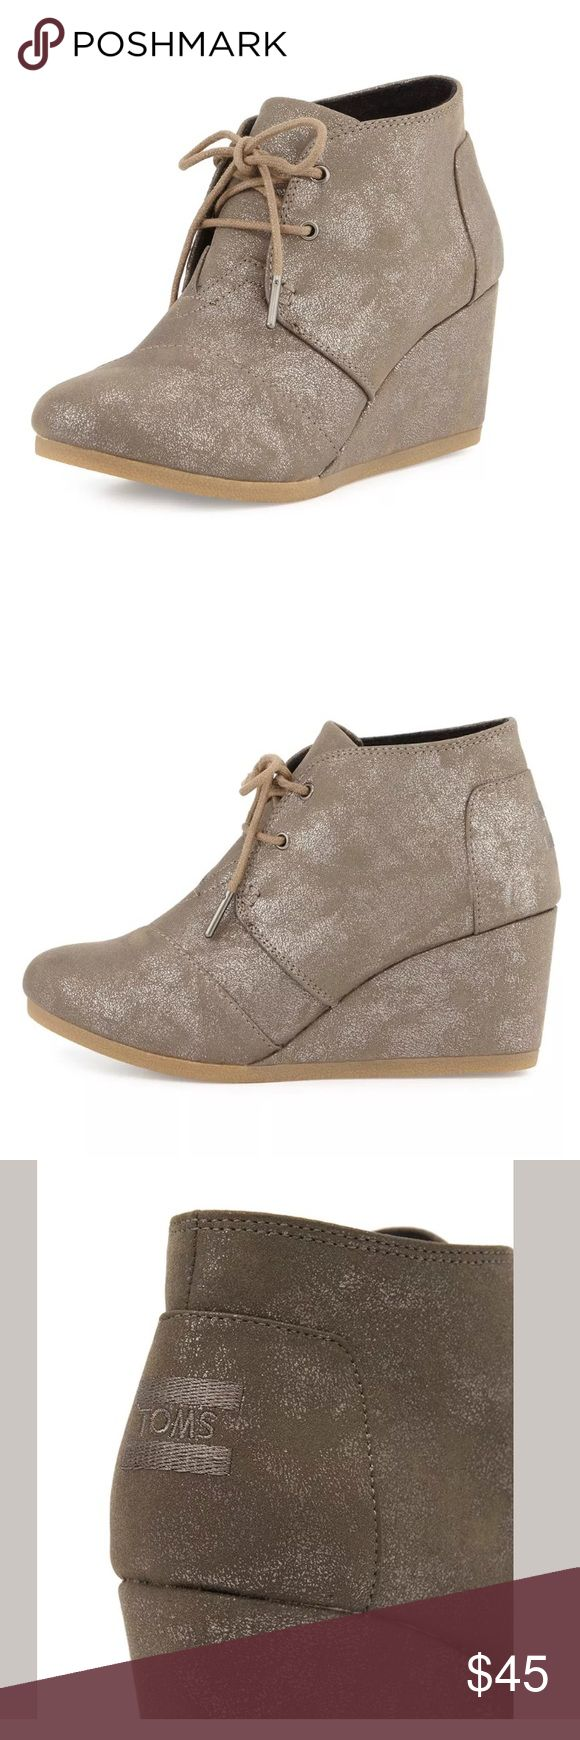 """Toms Gunmetal Metallic Wedge Bootie Toms Gunmetal Metallic Wedge Lace Up Bootie. 2 3/4"""" Heel 1/2"""" Platform. Only Worn Once. Like New / Excellent Condition Toms Shoes Ankle Boots & Booties"""